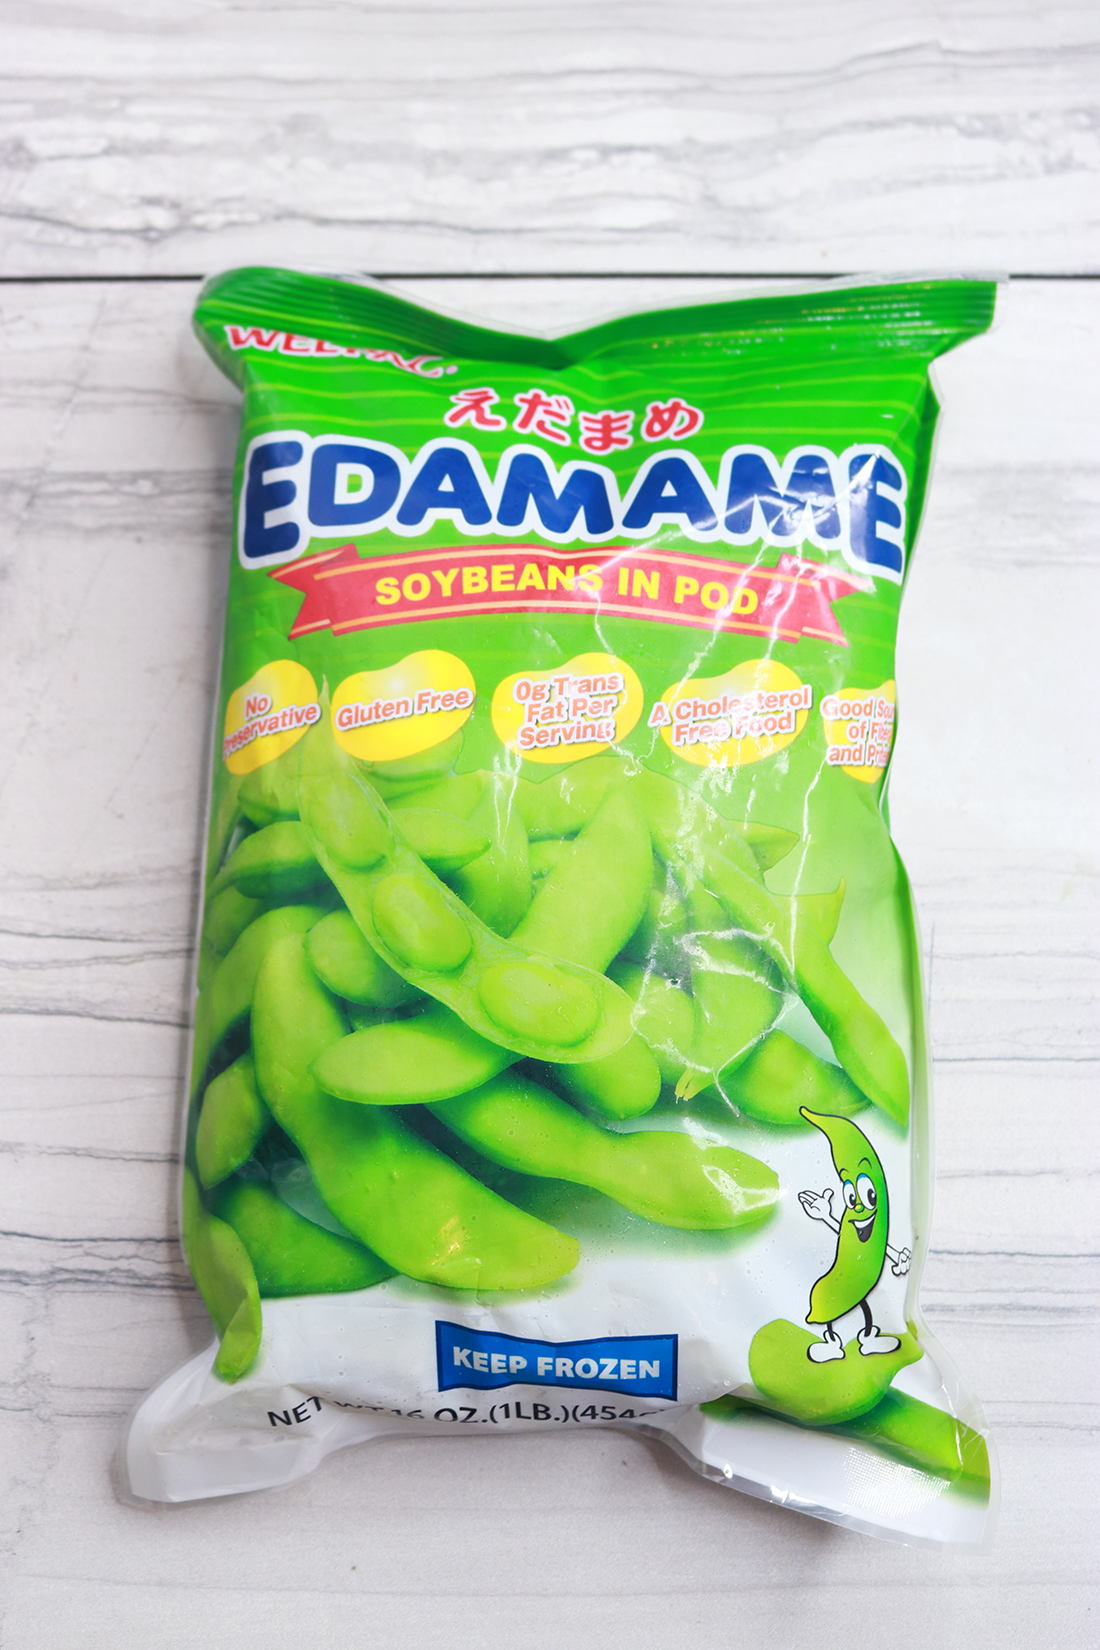 Look at that cute little edamame... It has arms and legs.